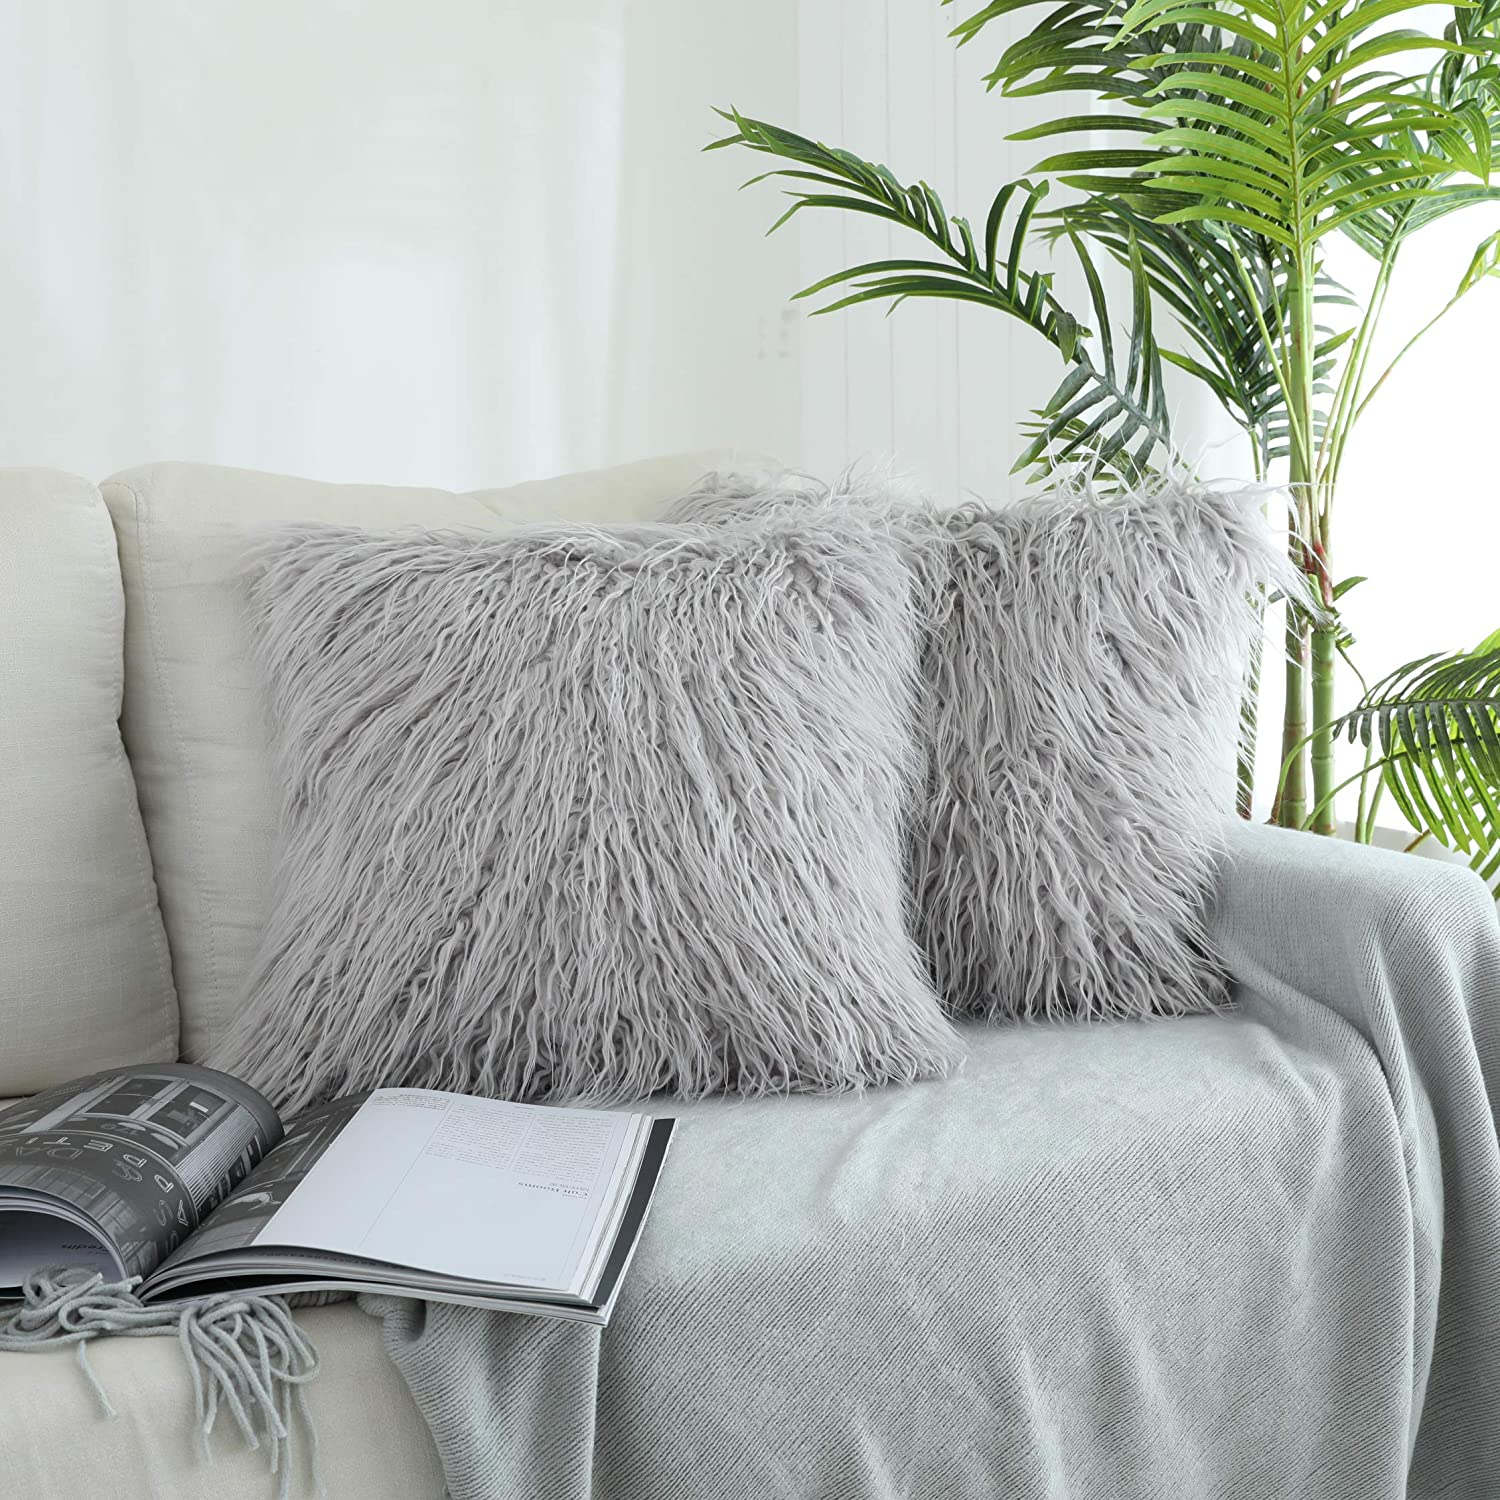 luxury throw pillow faux fur mongolian style plush cushion for couch bed and chair 18 x18 2 pack walmart com